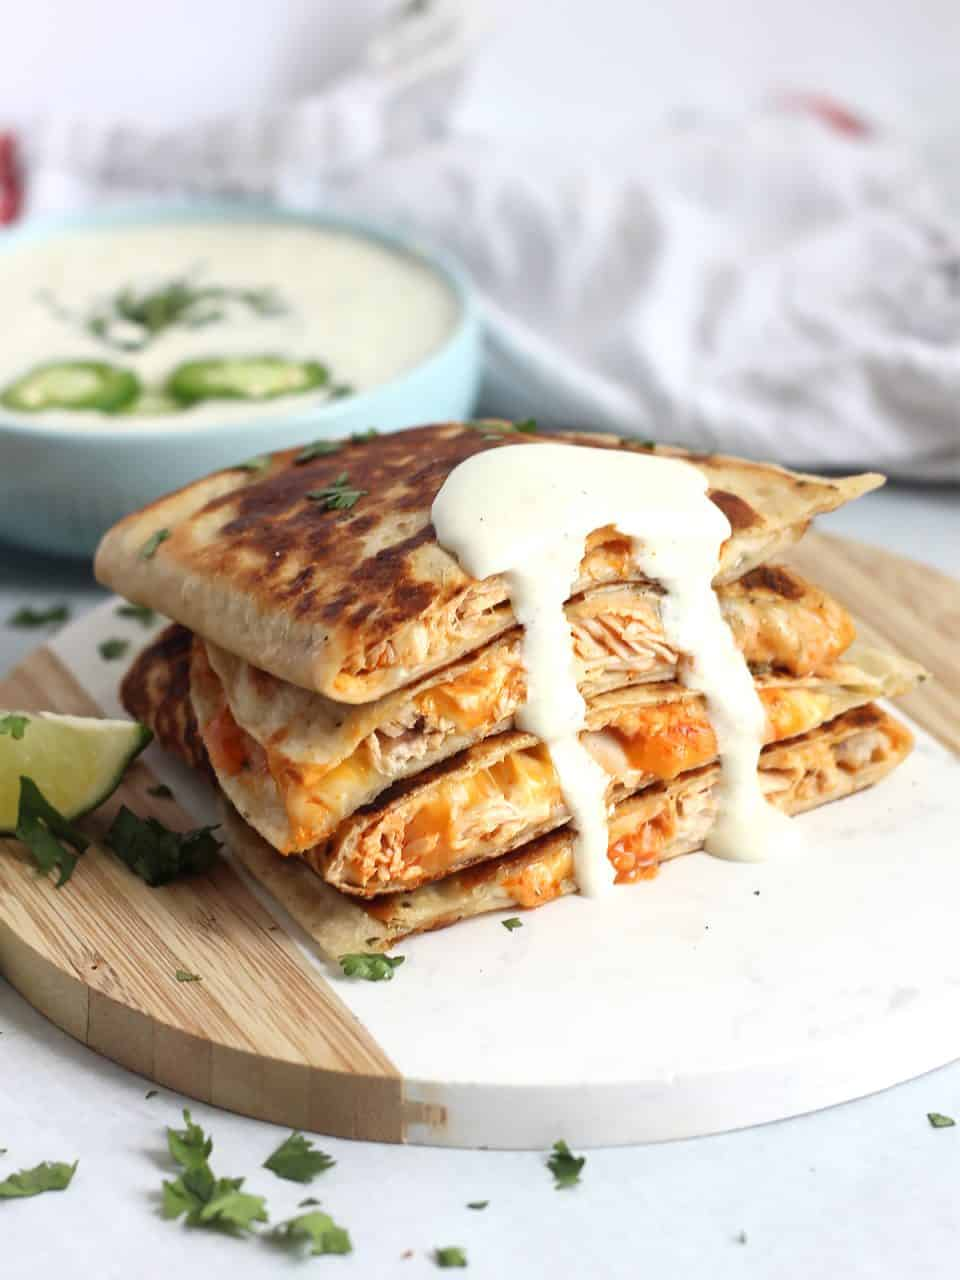 The quesadillas drizzled with a jalapeno sour cream sauce.